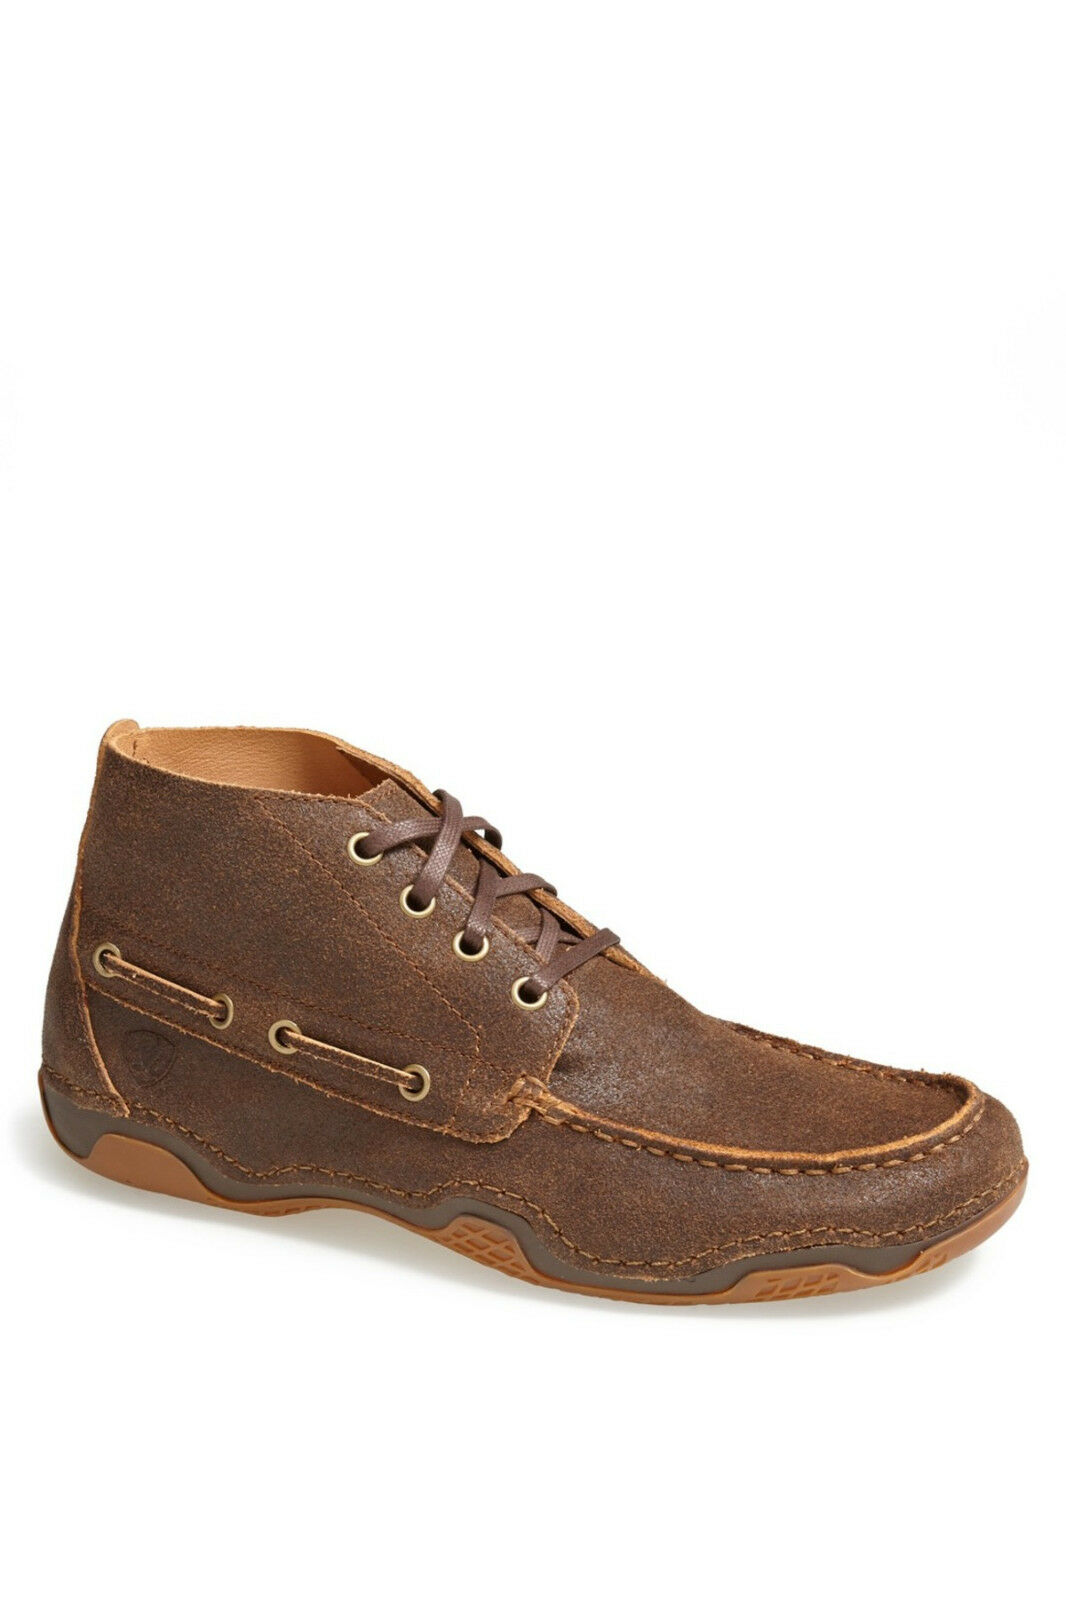 ARIAT HOLBROOK  CHUKKA BOOT WEATHEROT WOOD  HOLBROOK Herren SIZE 8 NEW WITH BOX 5a990f